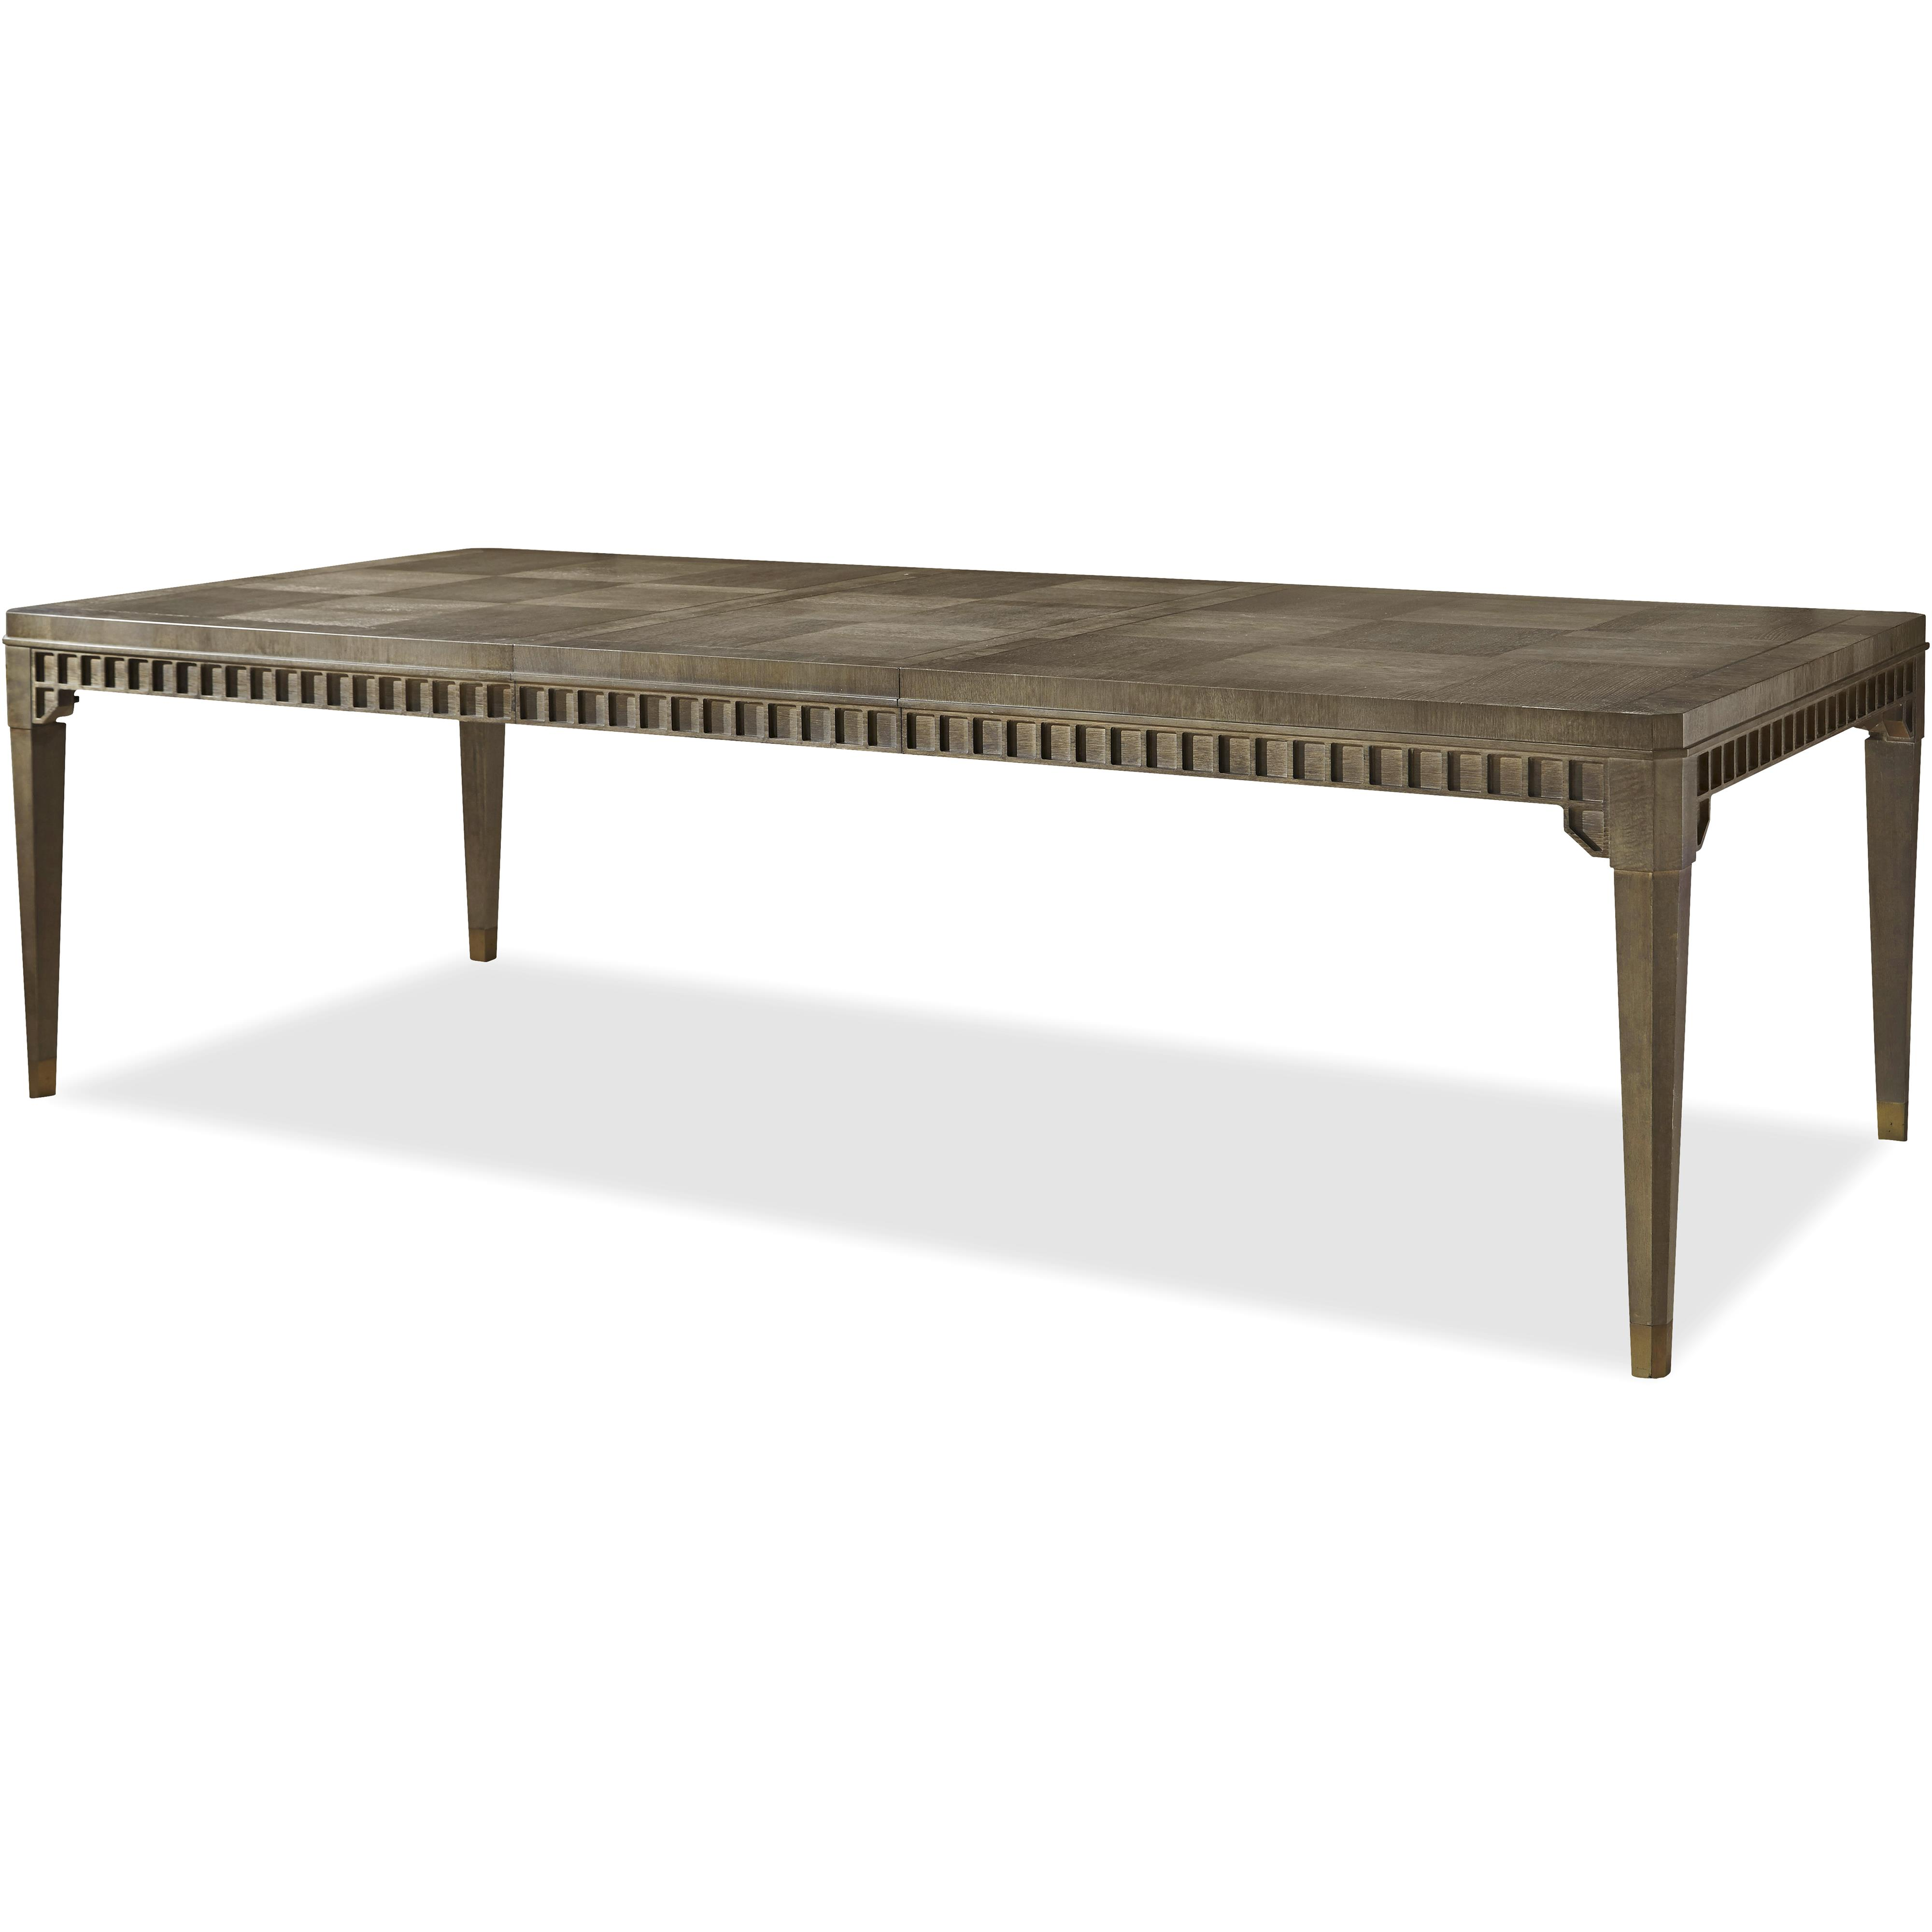 Morris Home Furnishings Platinum Platinum Dinner Table - Item Number: 507653